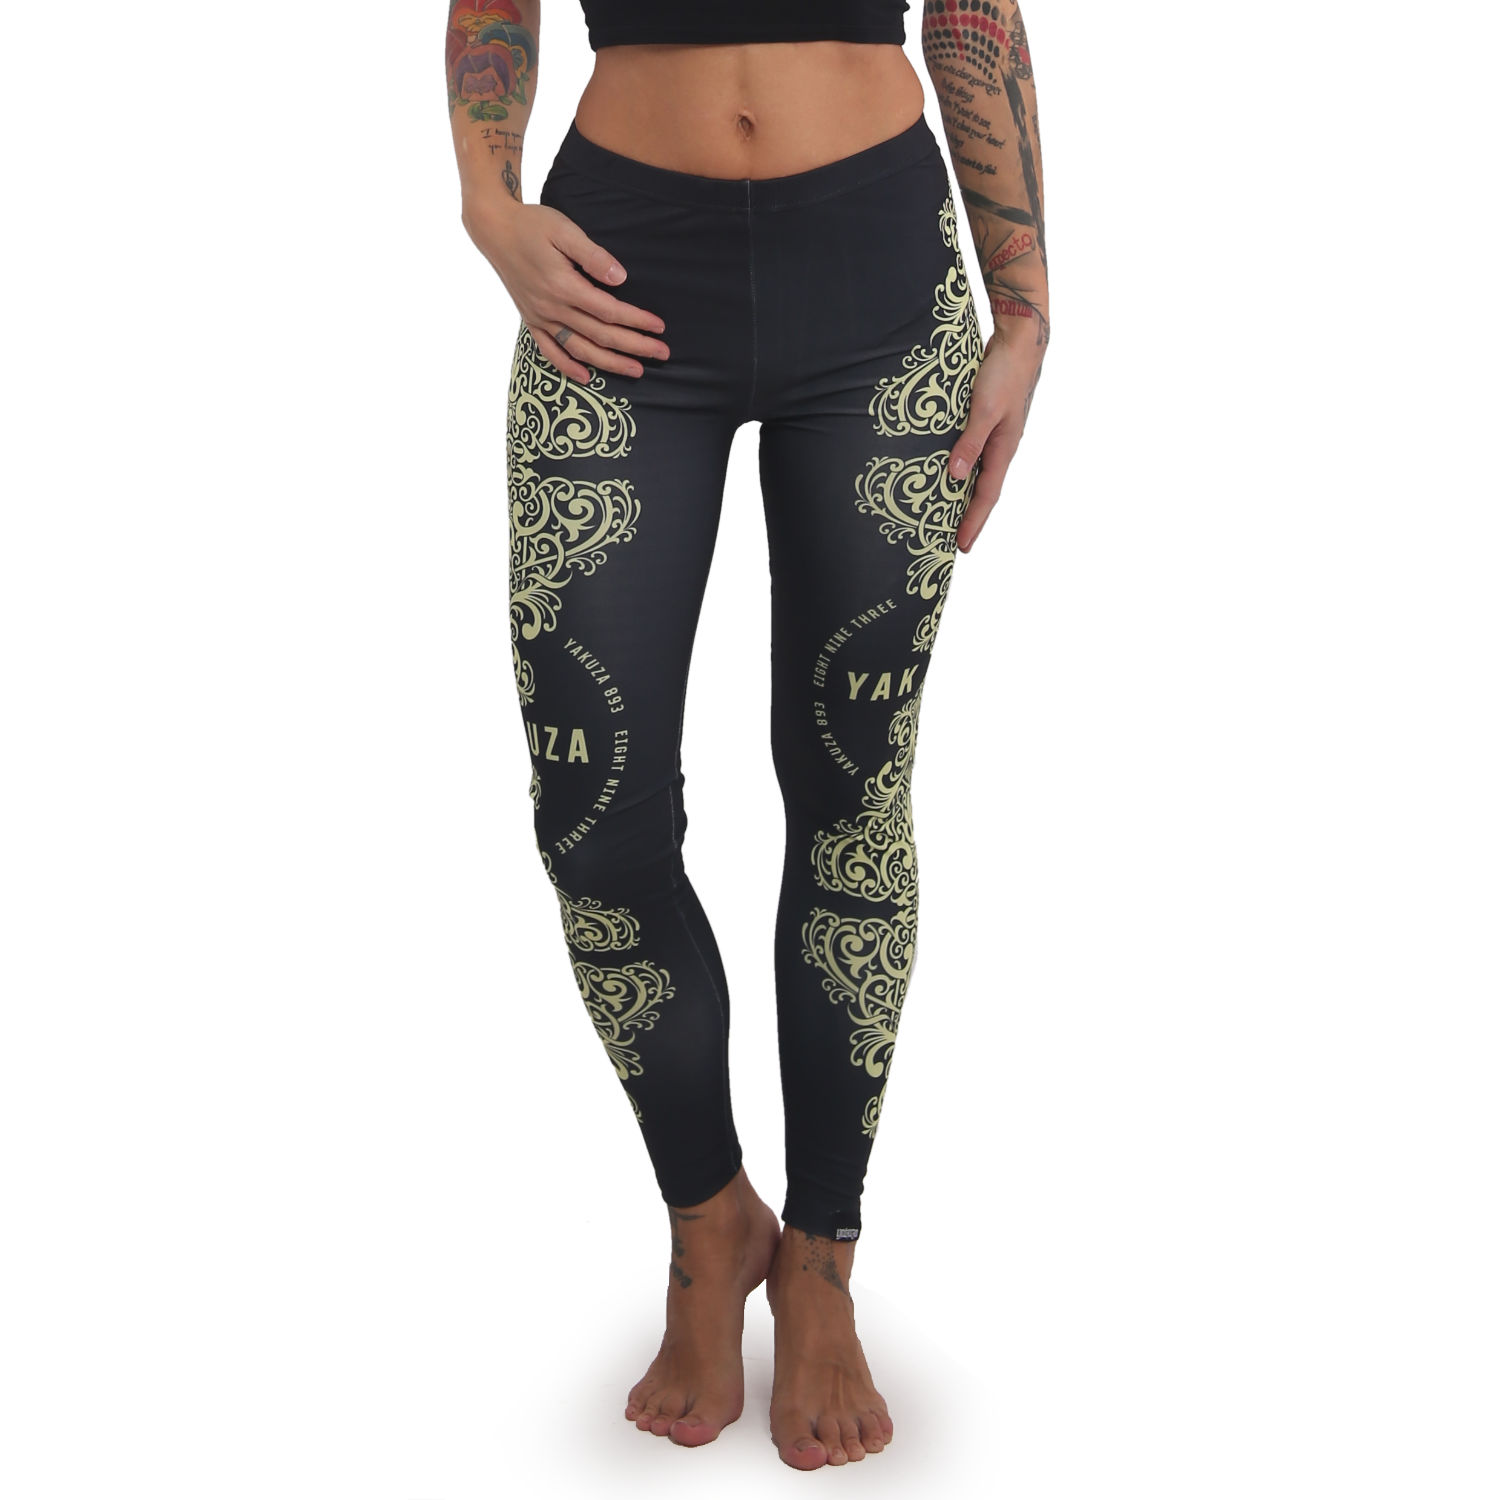 Yakuza, Ornamentic Leggings, LEB14126 BLK XS